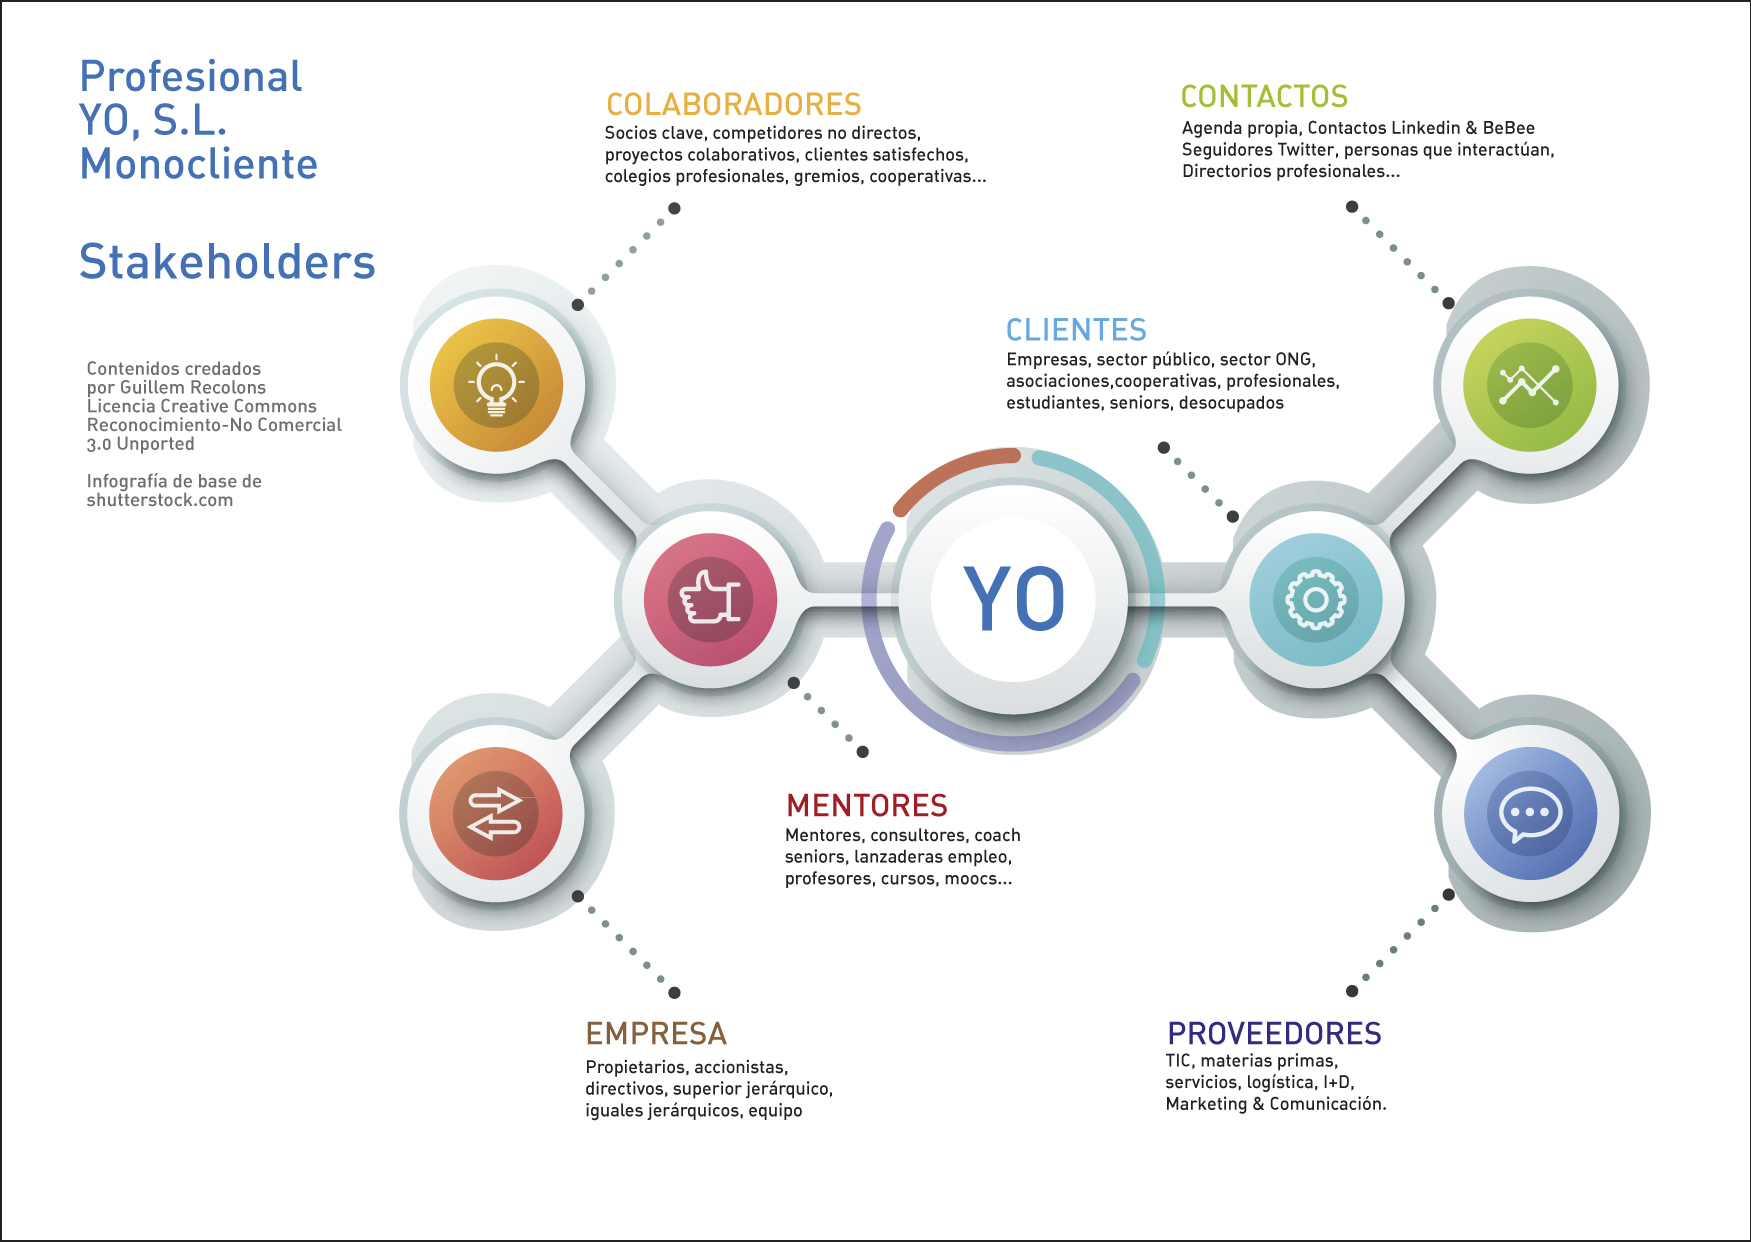 Professional personal stakeholders for employees